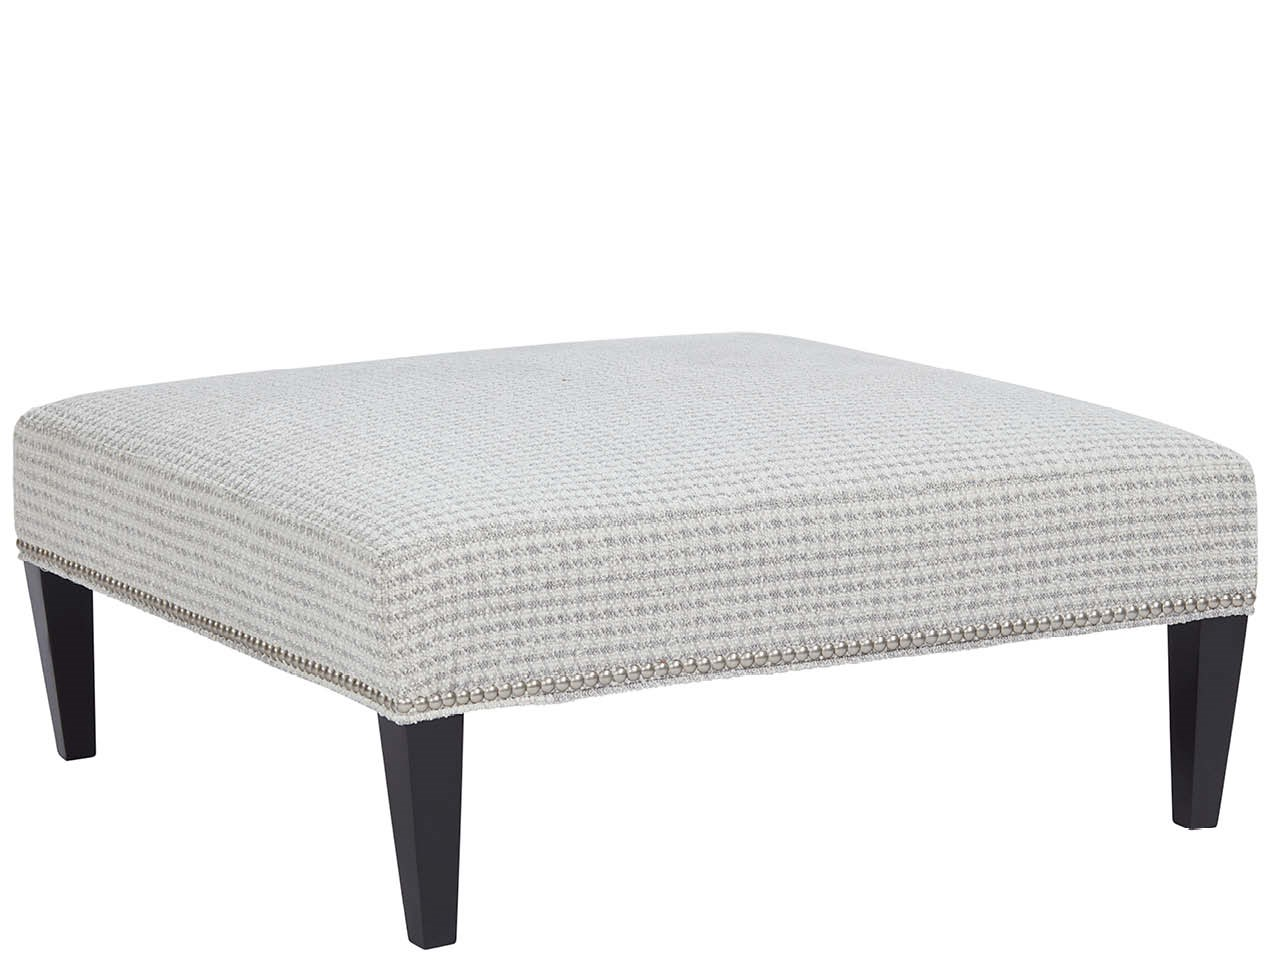 Pritchard Square Ottoman - Special Order